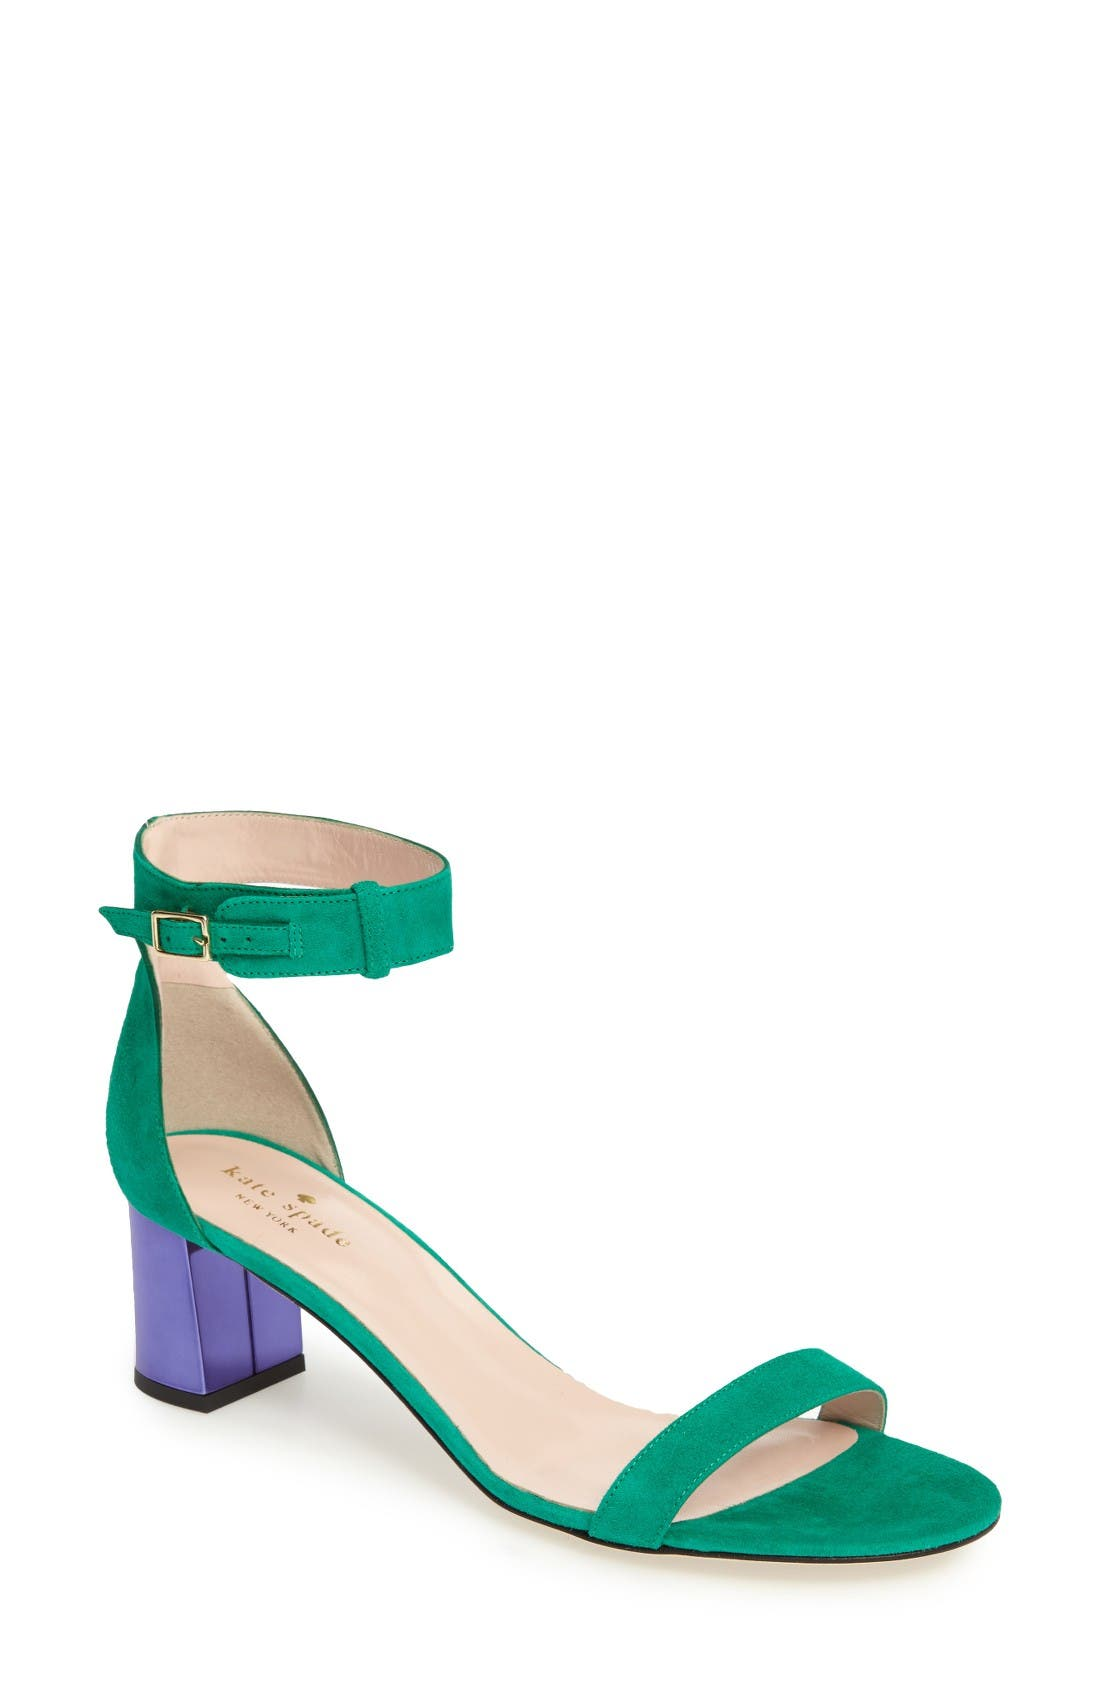 kate spade new york menorca ankle strap sandal (Women)